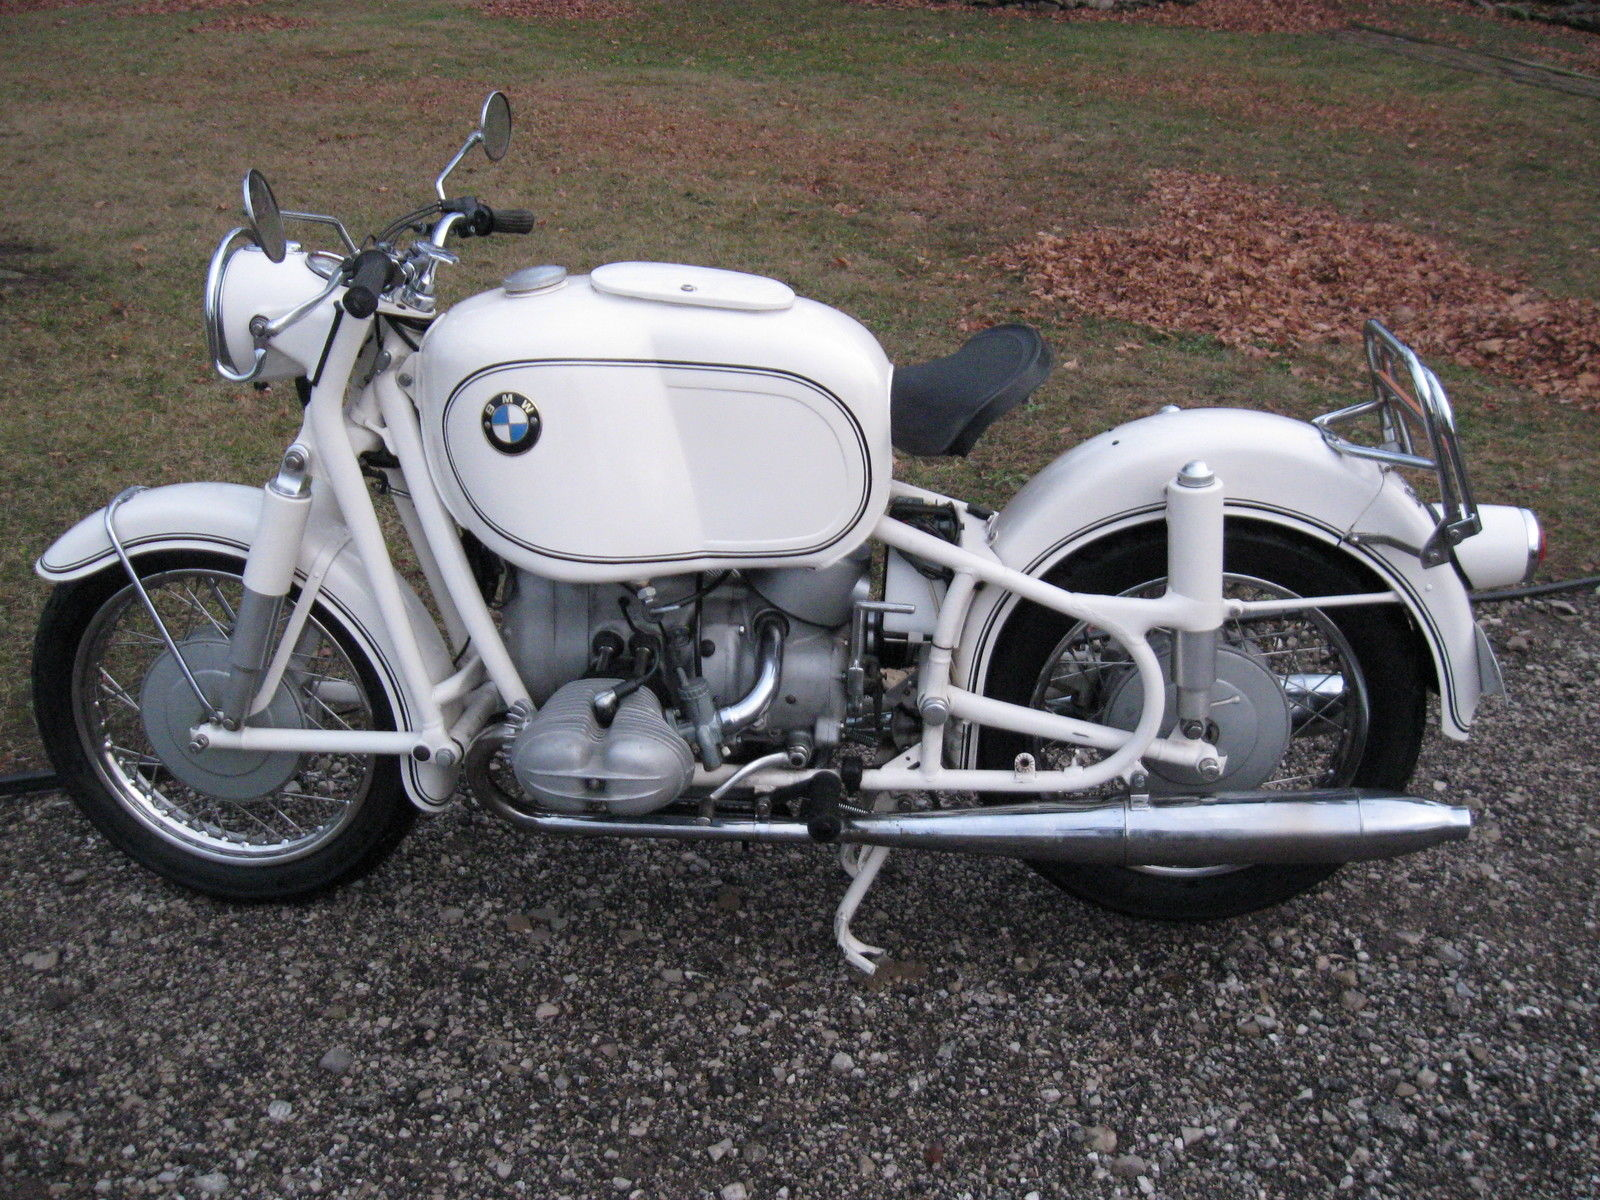 BMW R69S - 1966 - Frame, Gas Tank and Seat.